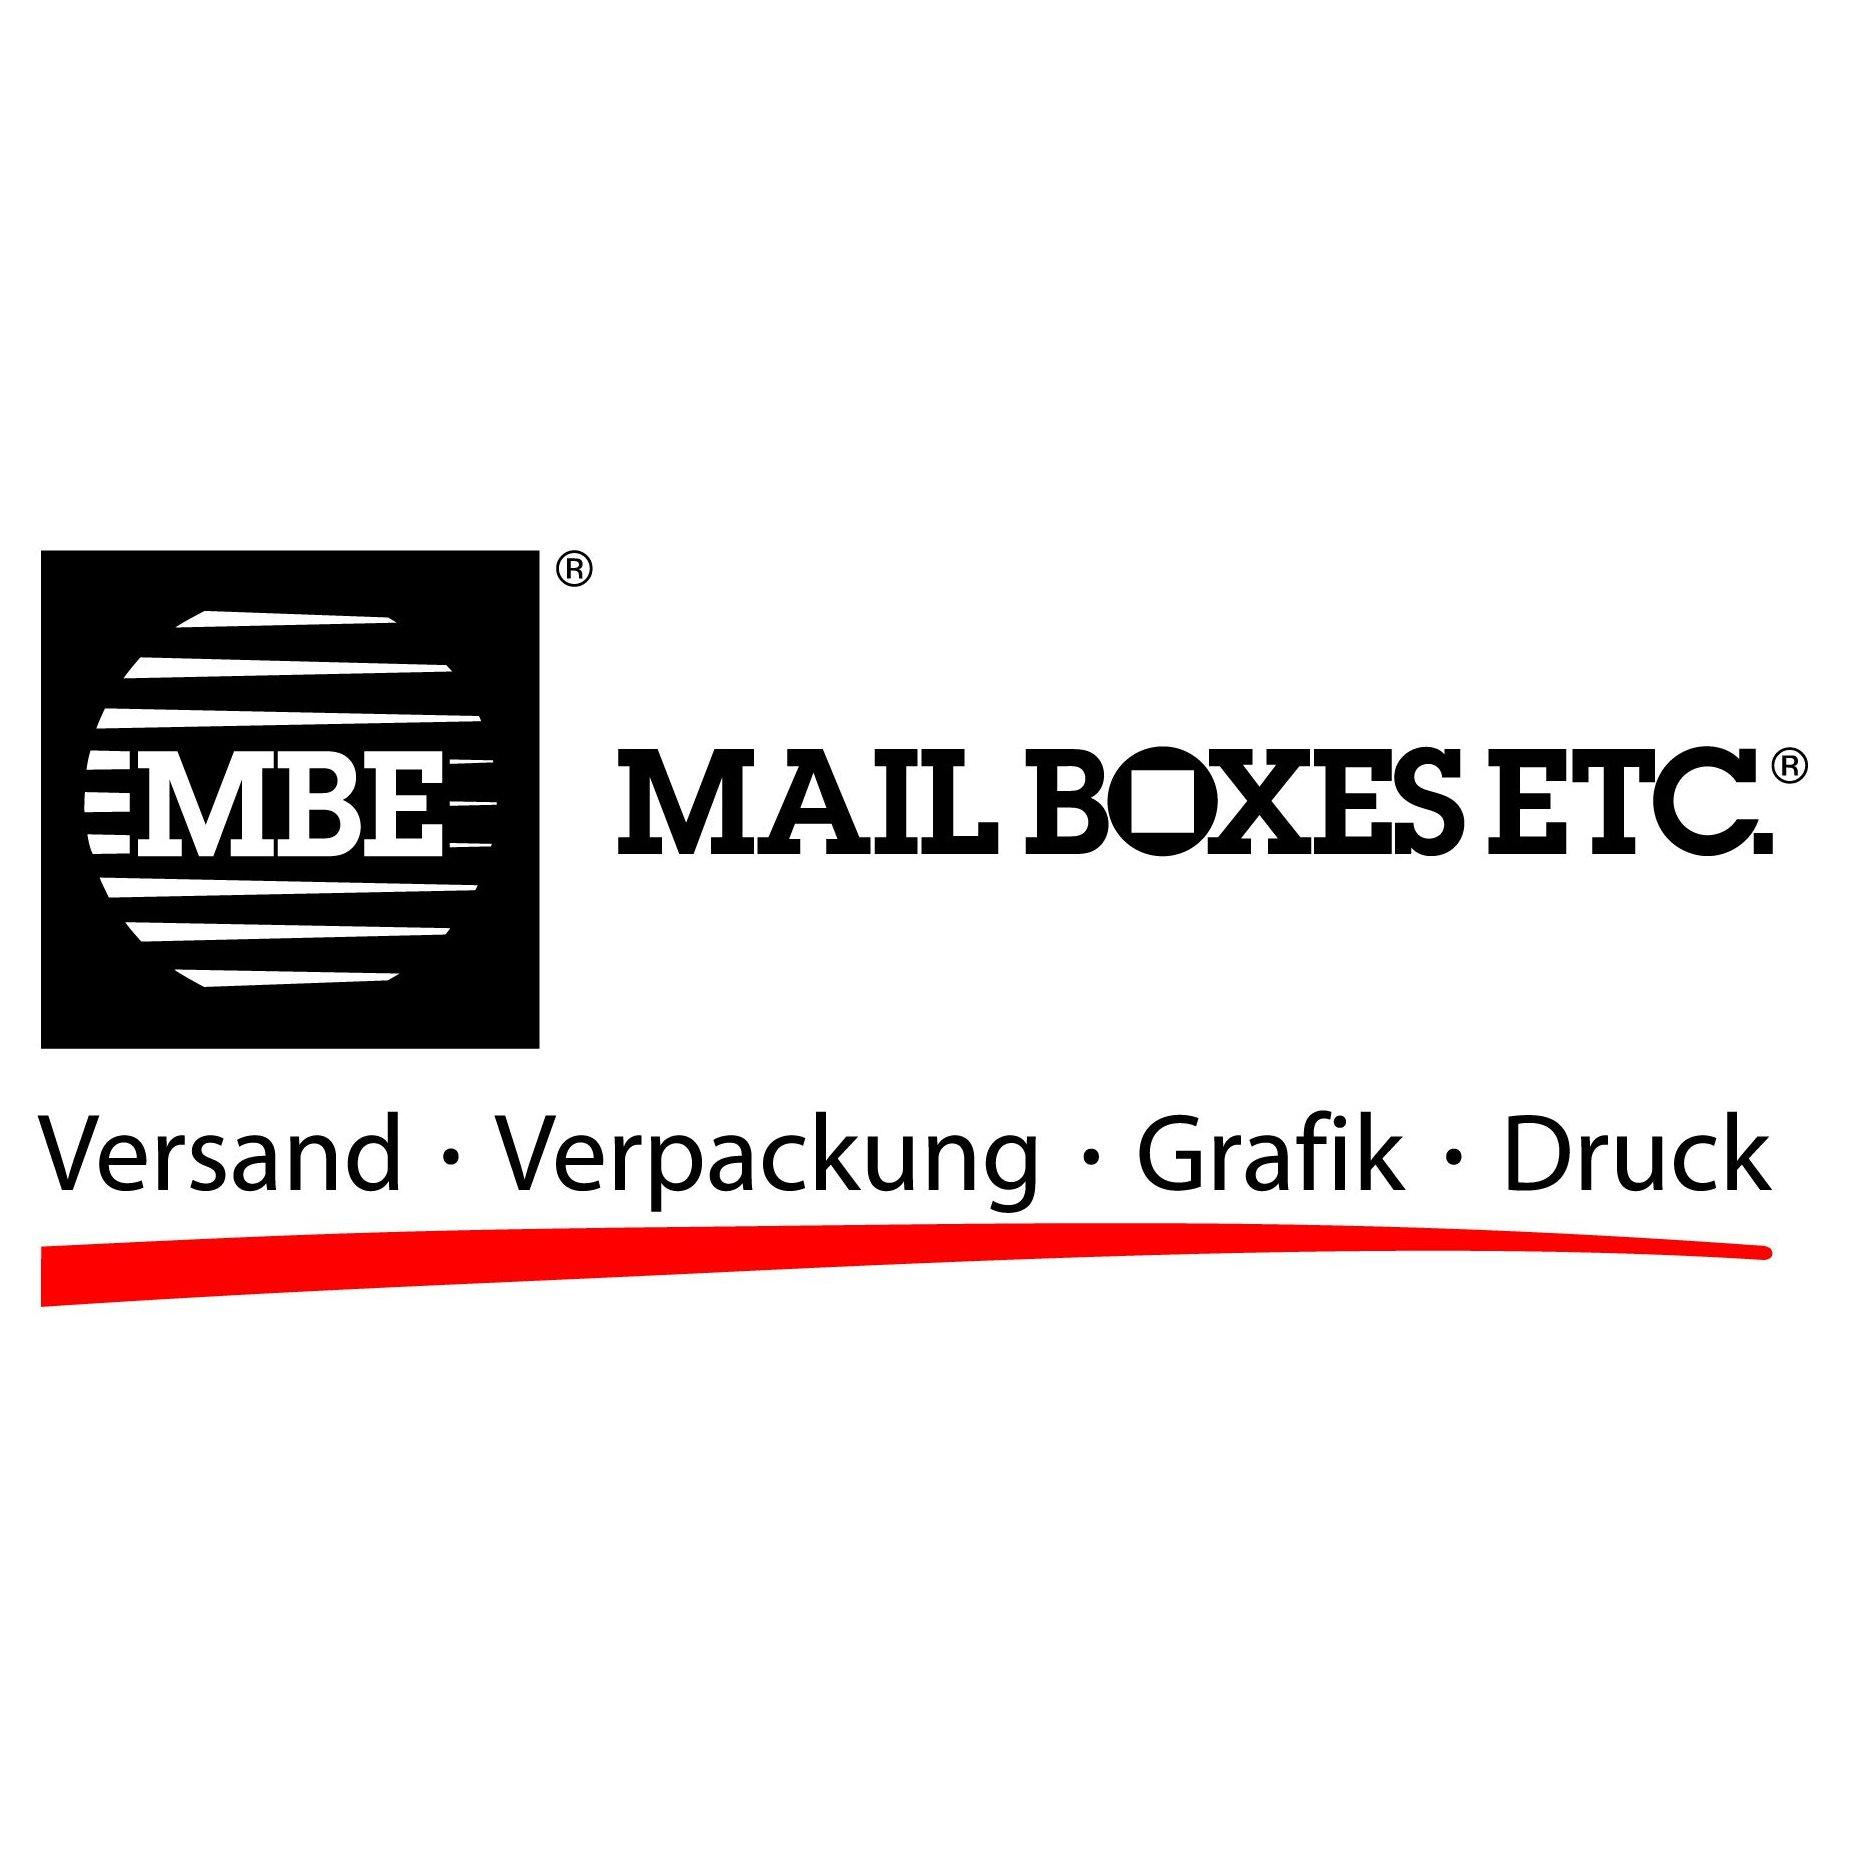 """MAIL BOXES ETC."""